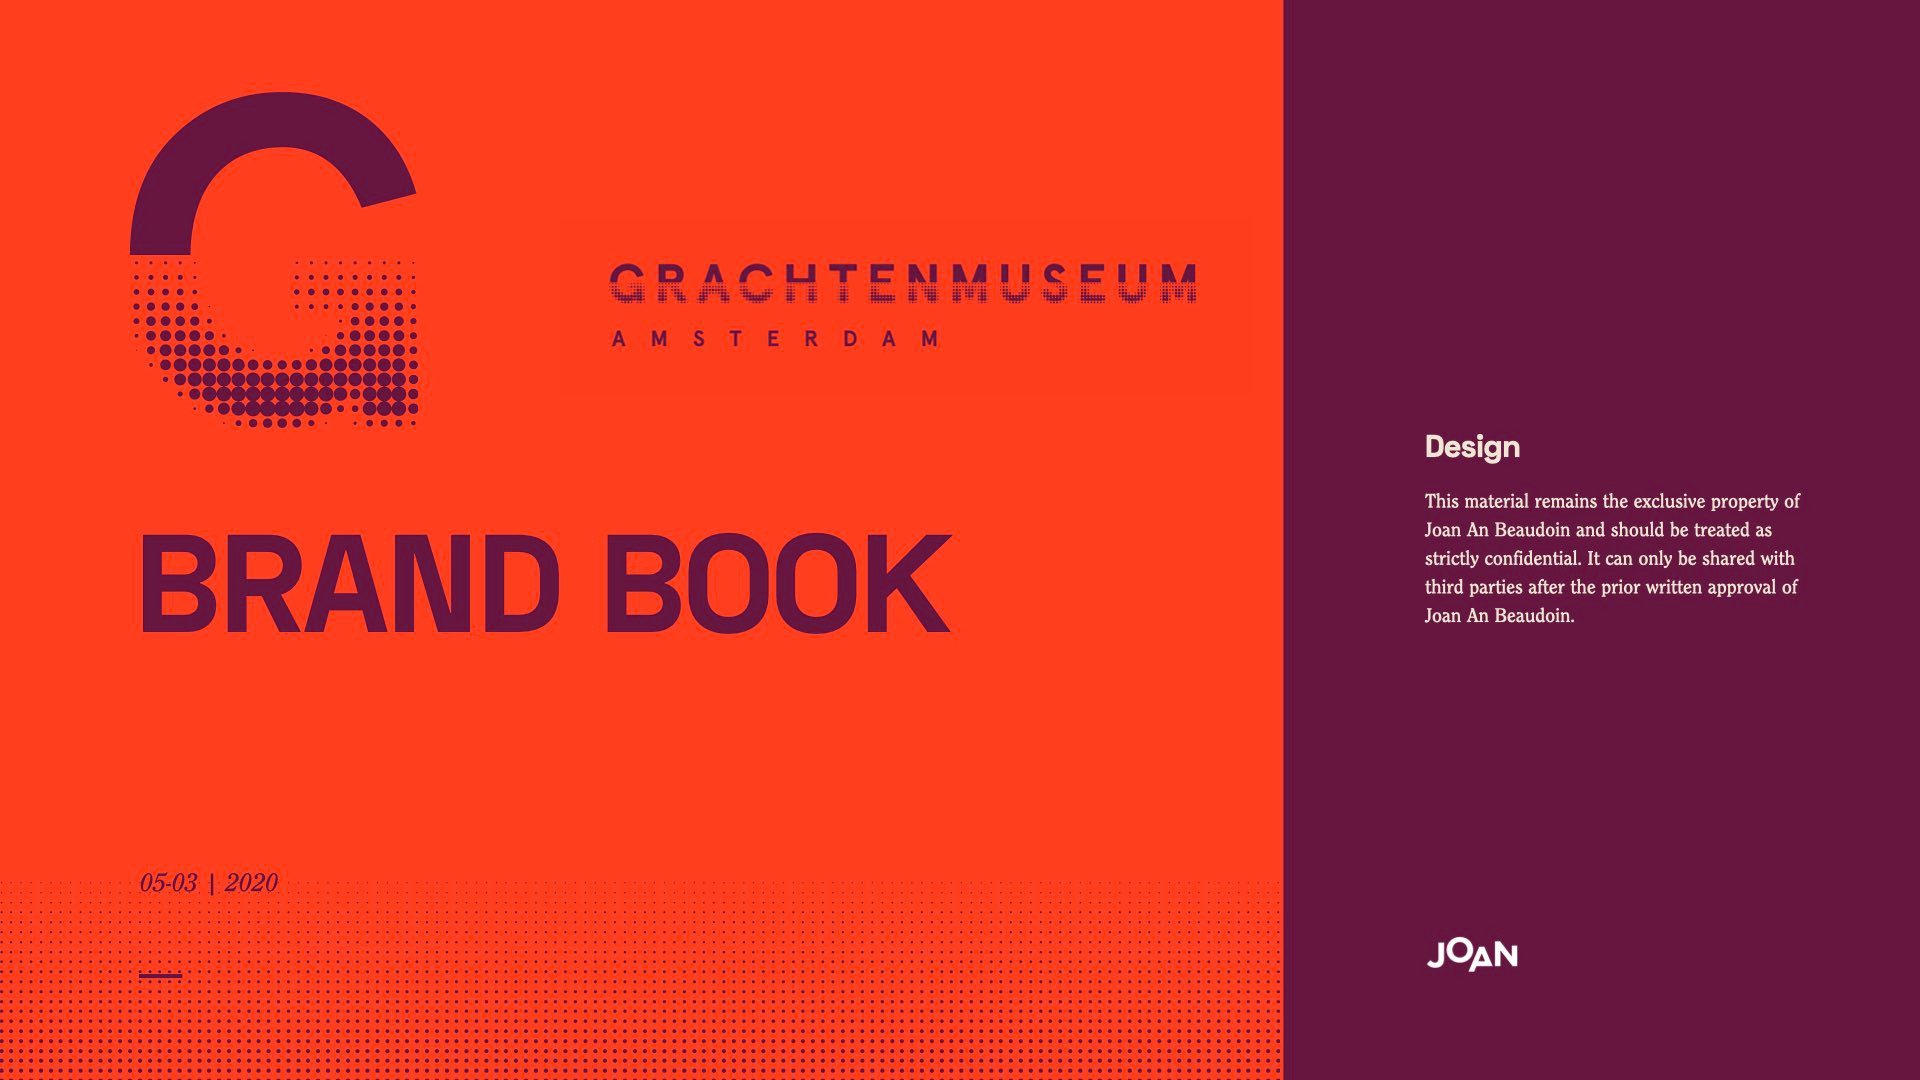 GRACHTENMUSEUM_SLIDES_WIX.001.jpeg